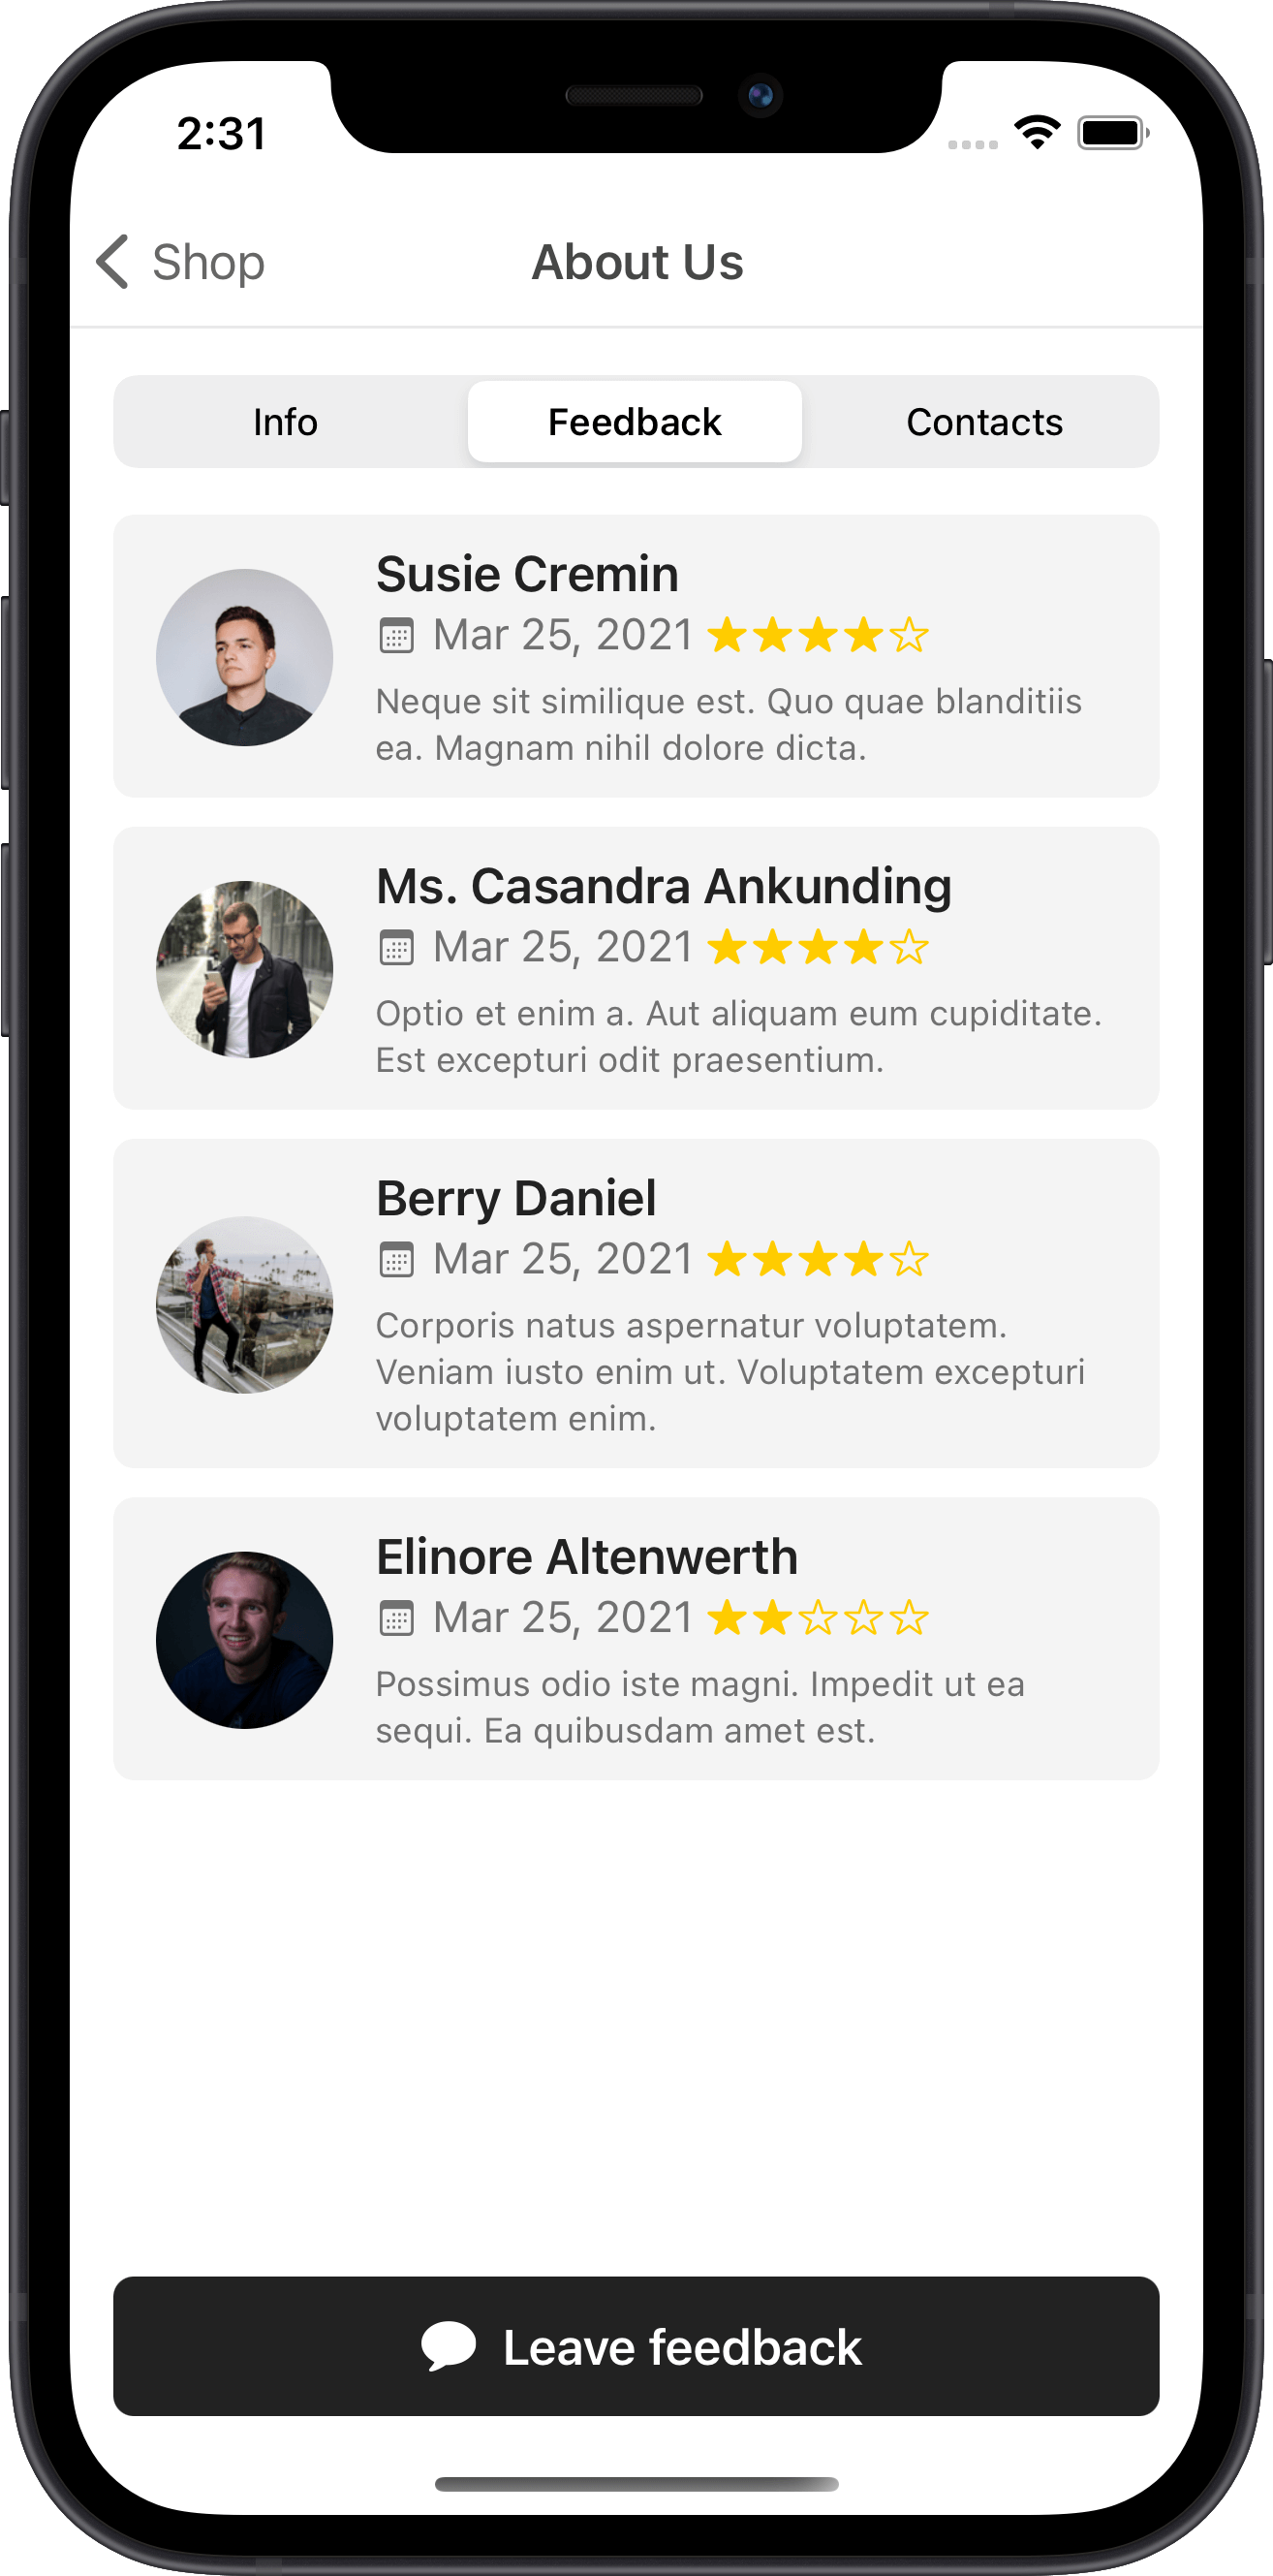 e-commerce, about us, feedback